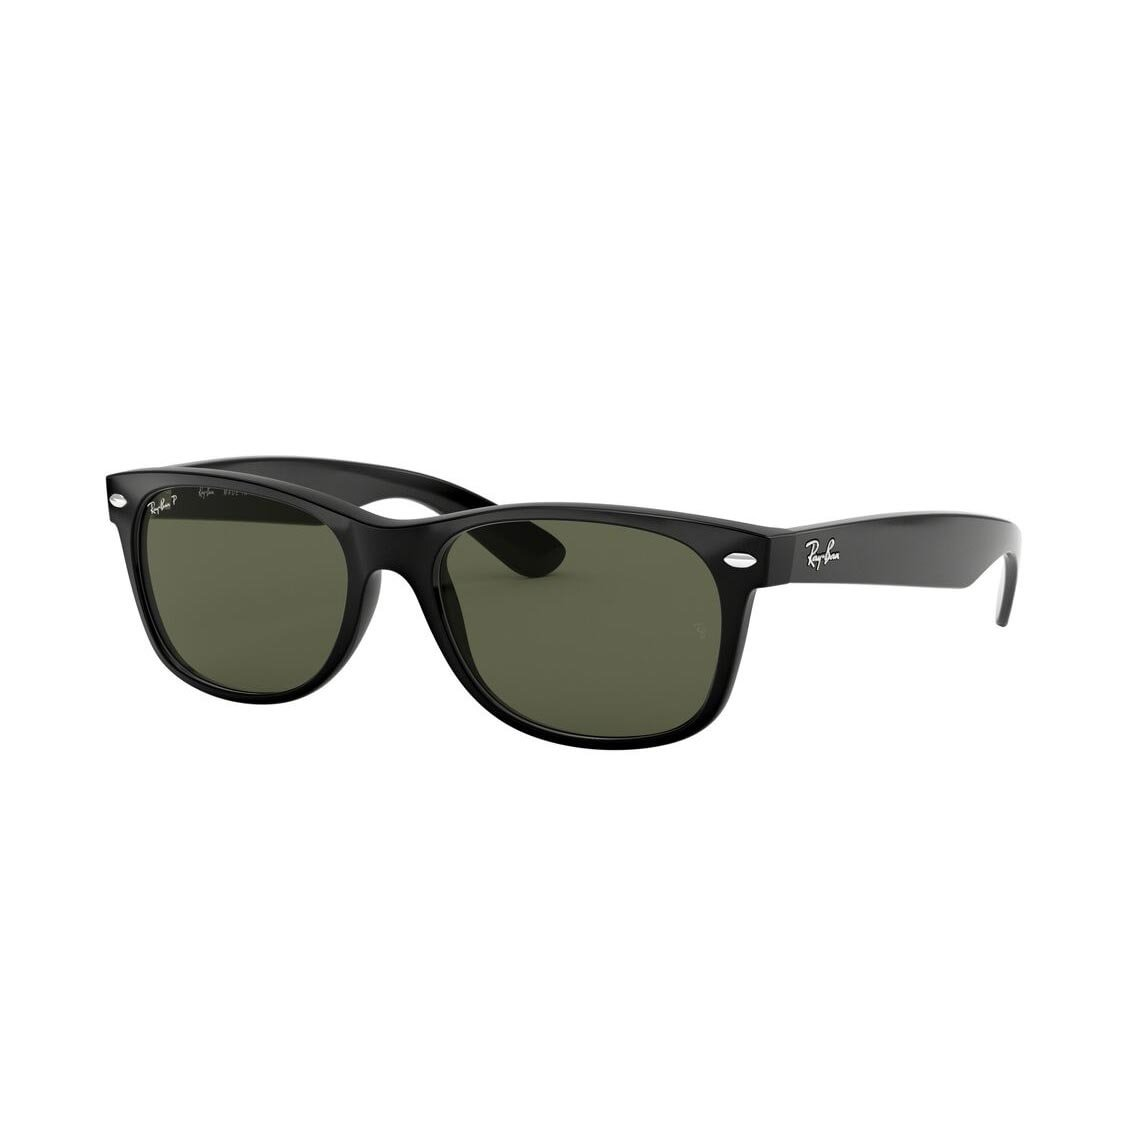 Ray-Ban New Wayfarer RB2132 901/58 58